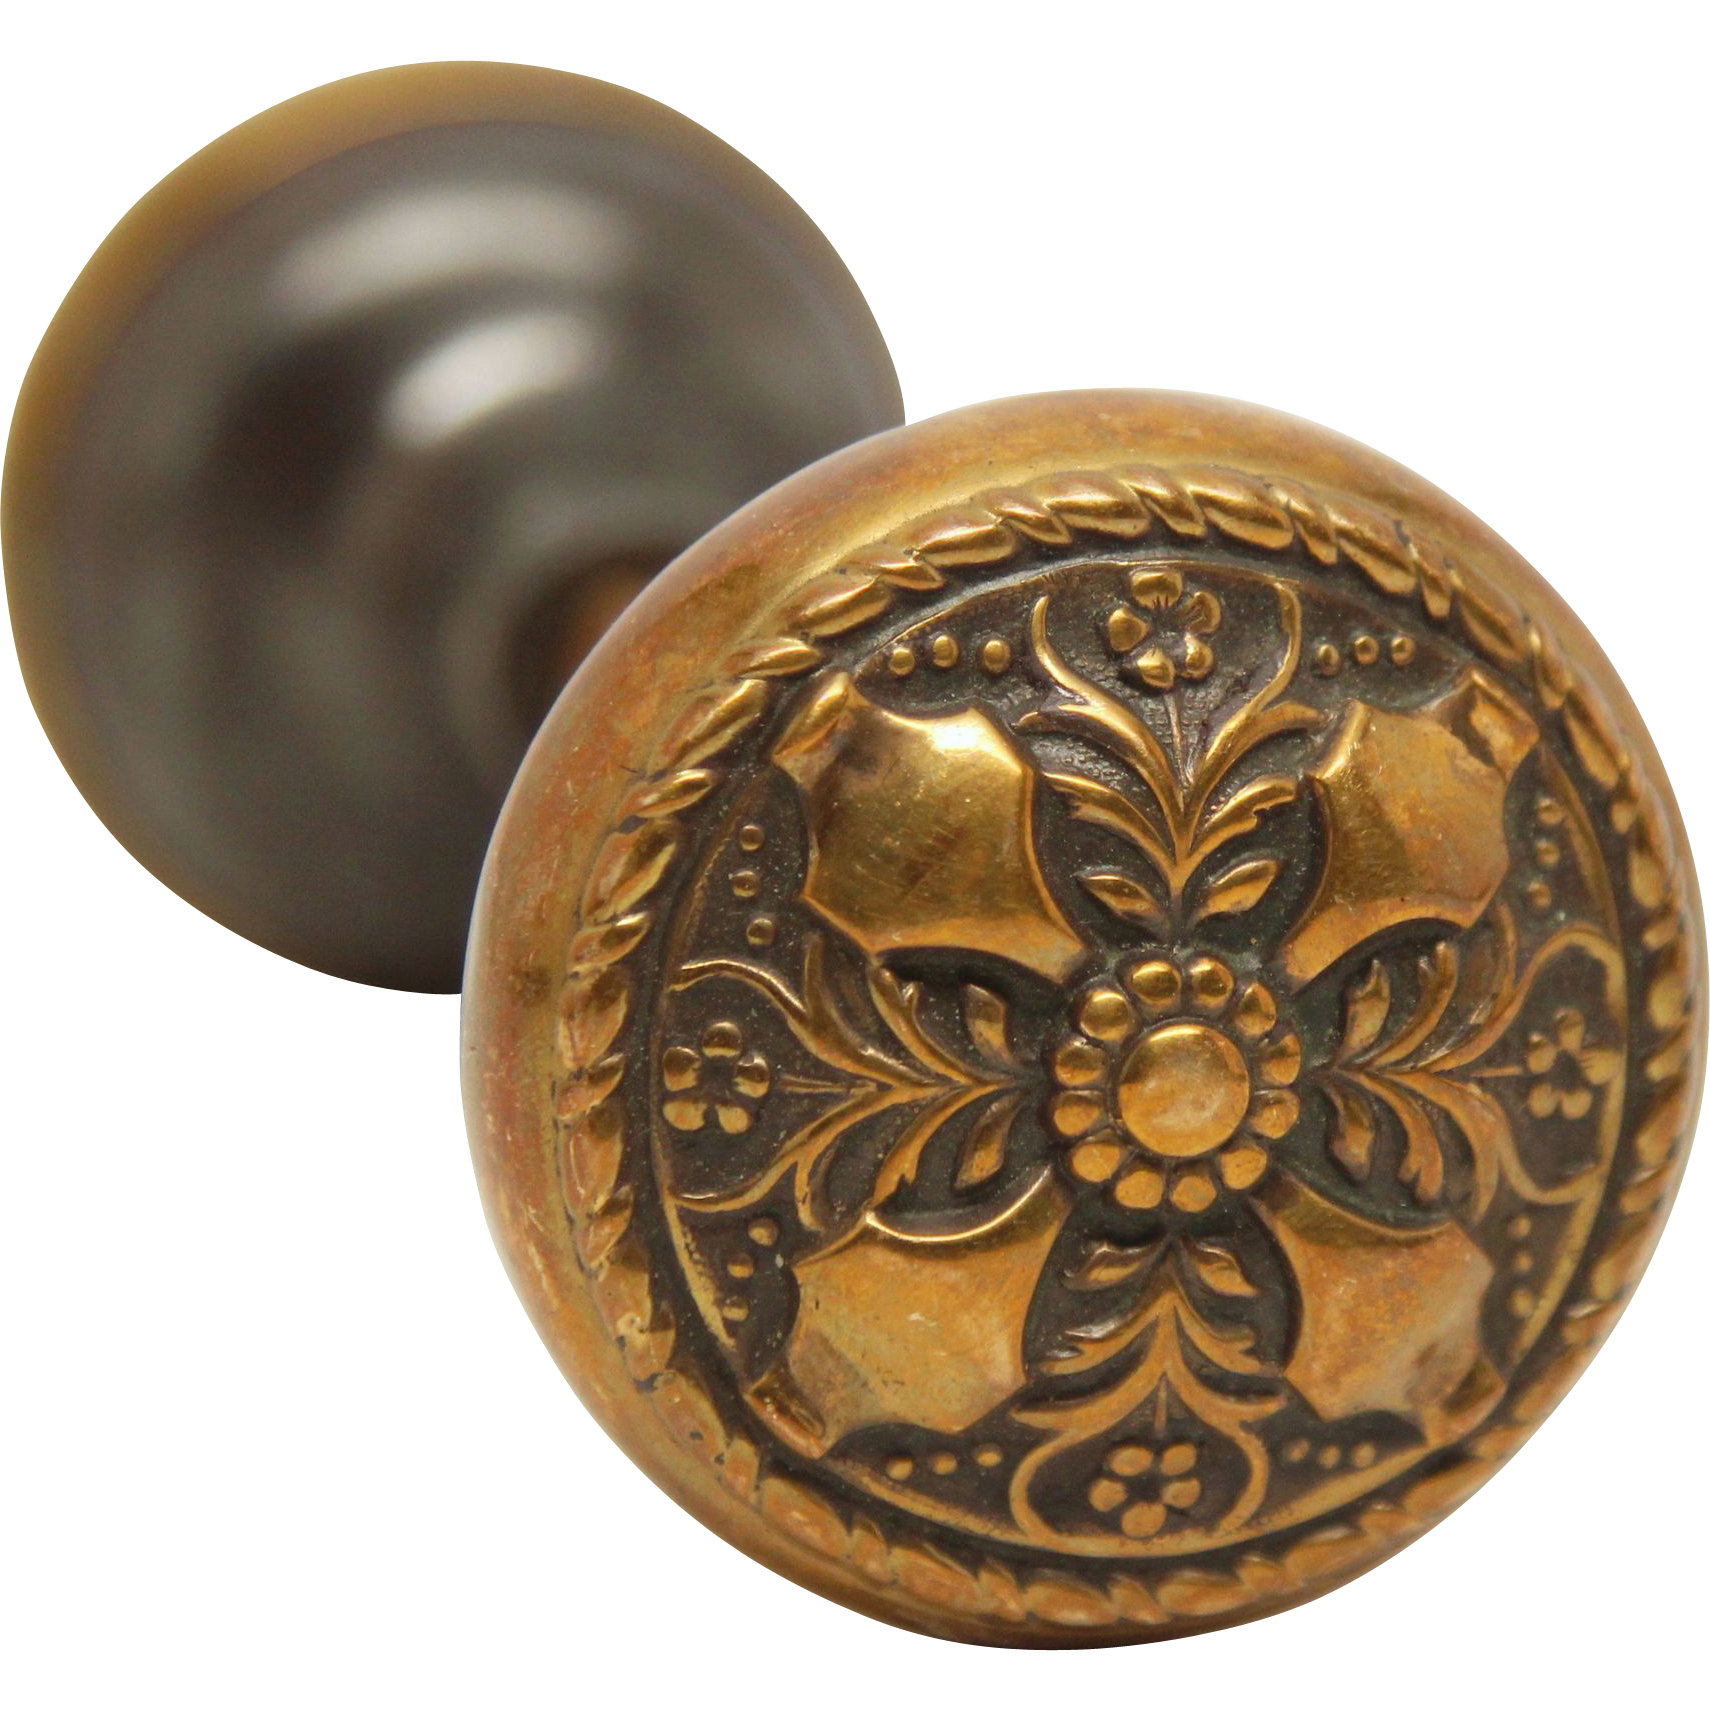 Ornate 4 fold floral knob set by Russell and Erwin